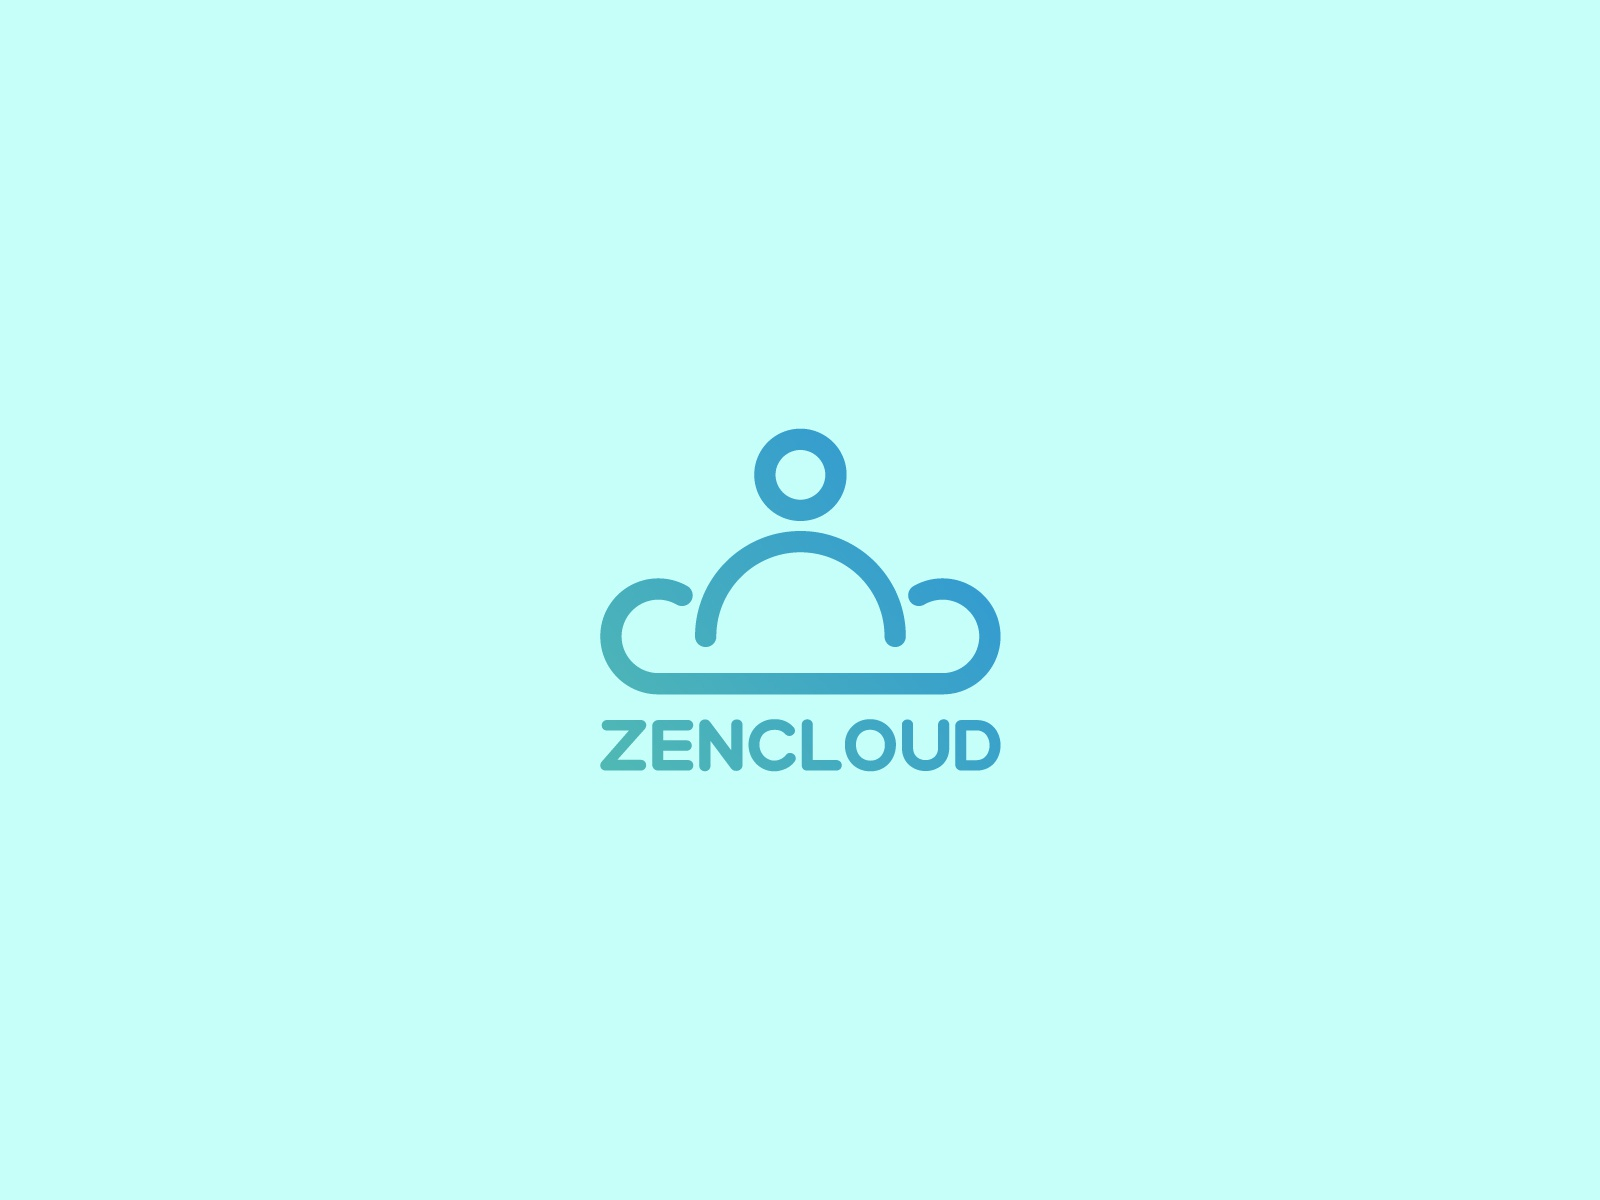 Day 14 zencloud dribbble